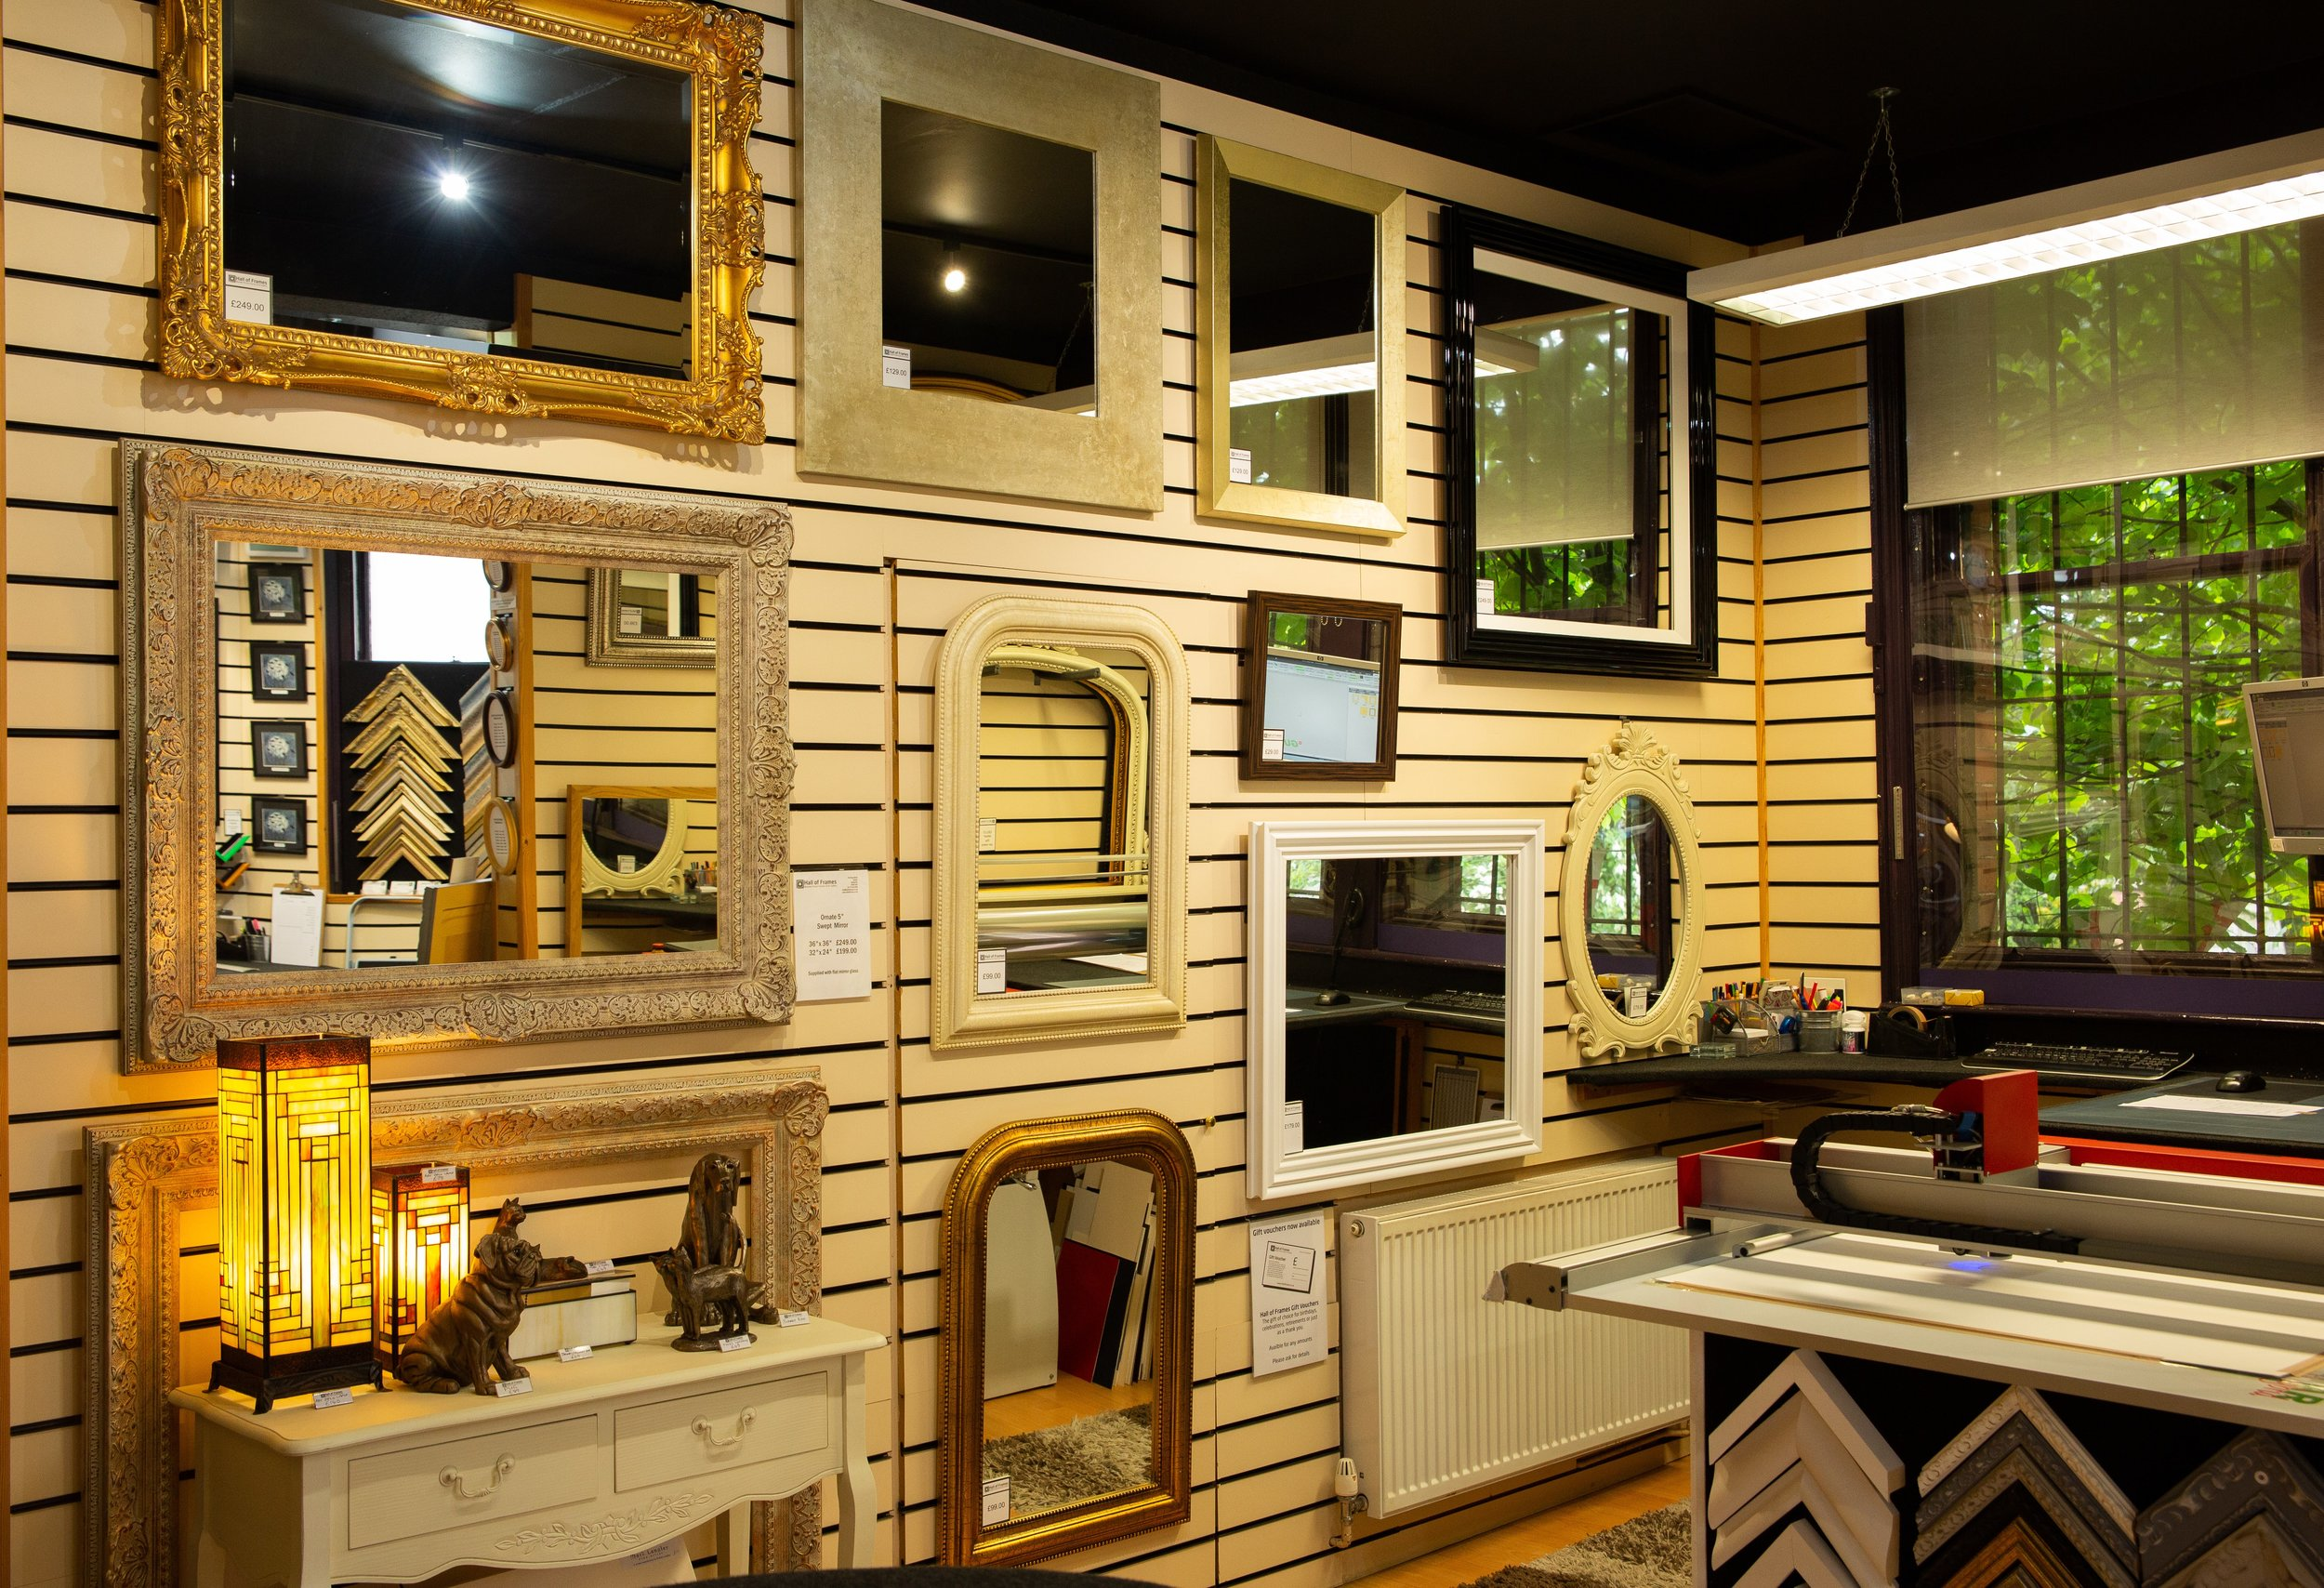 MIRRORS - A well placed mirror is both a practical and decorative feature that adds a finishing touch to your decor.